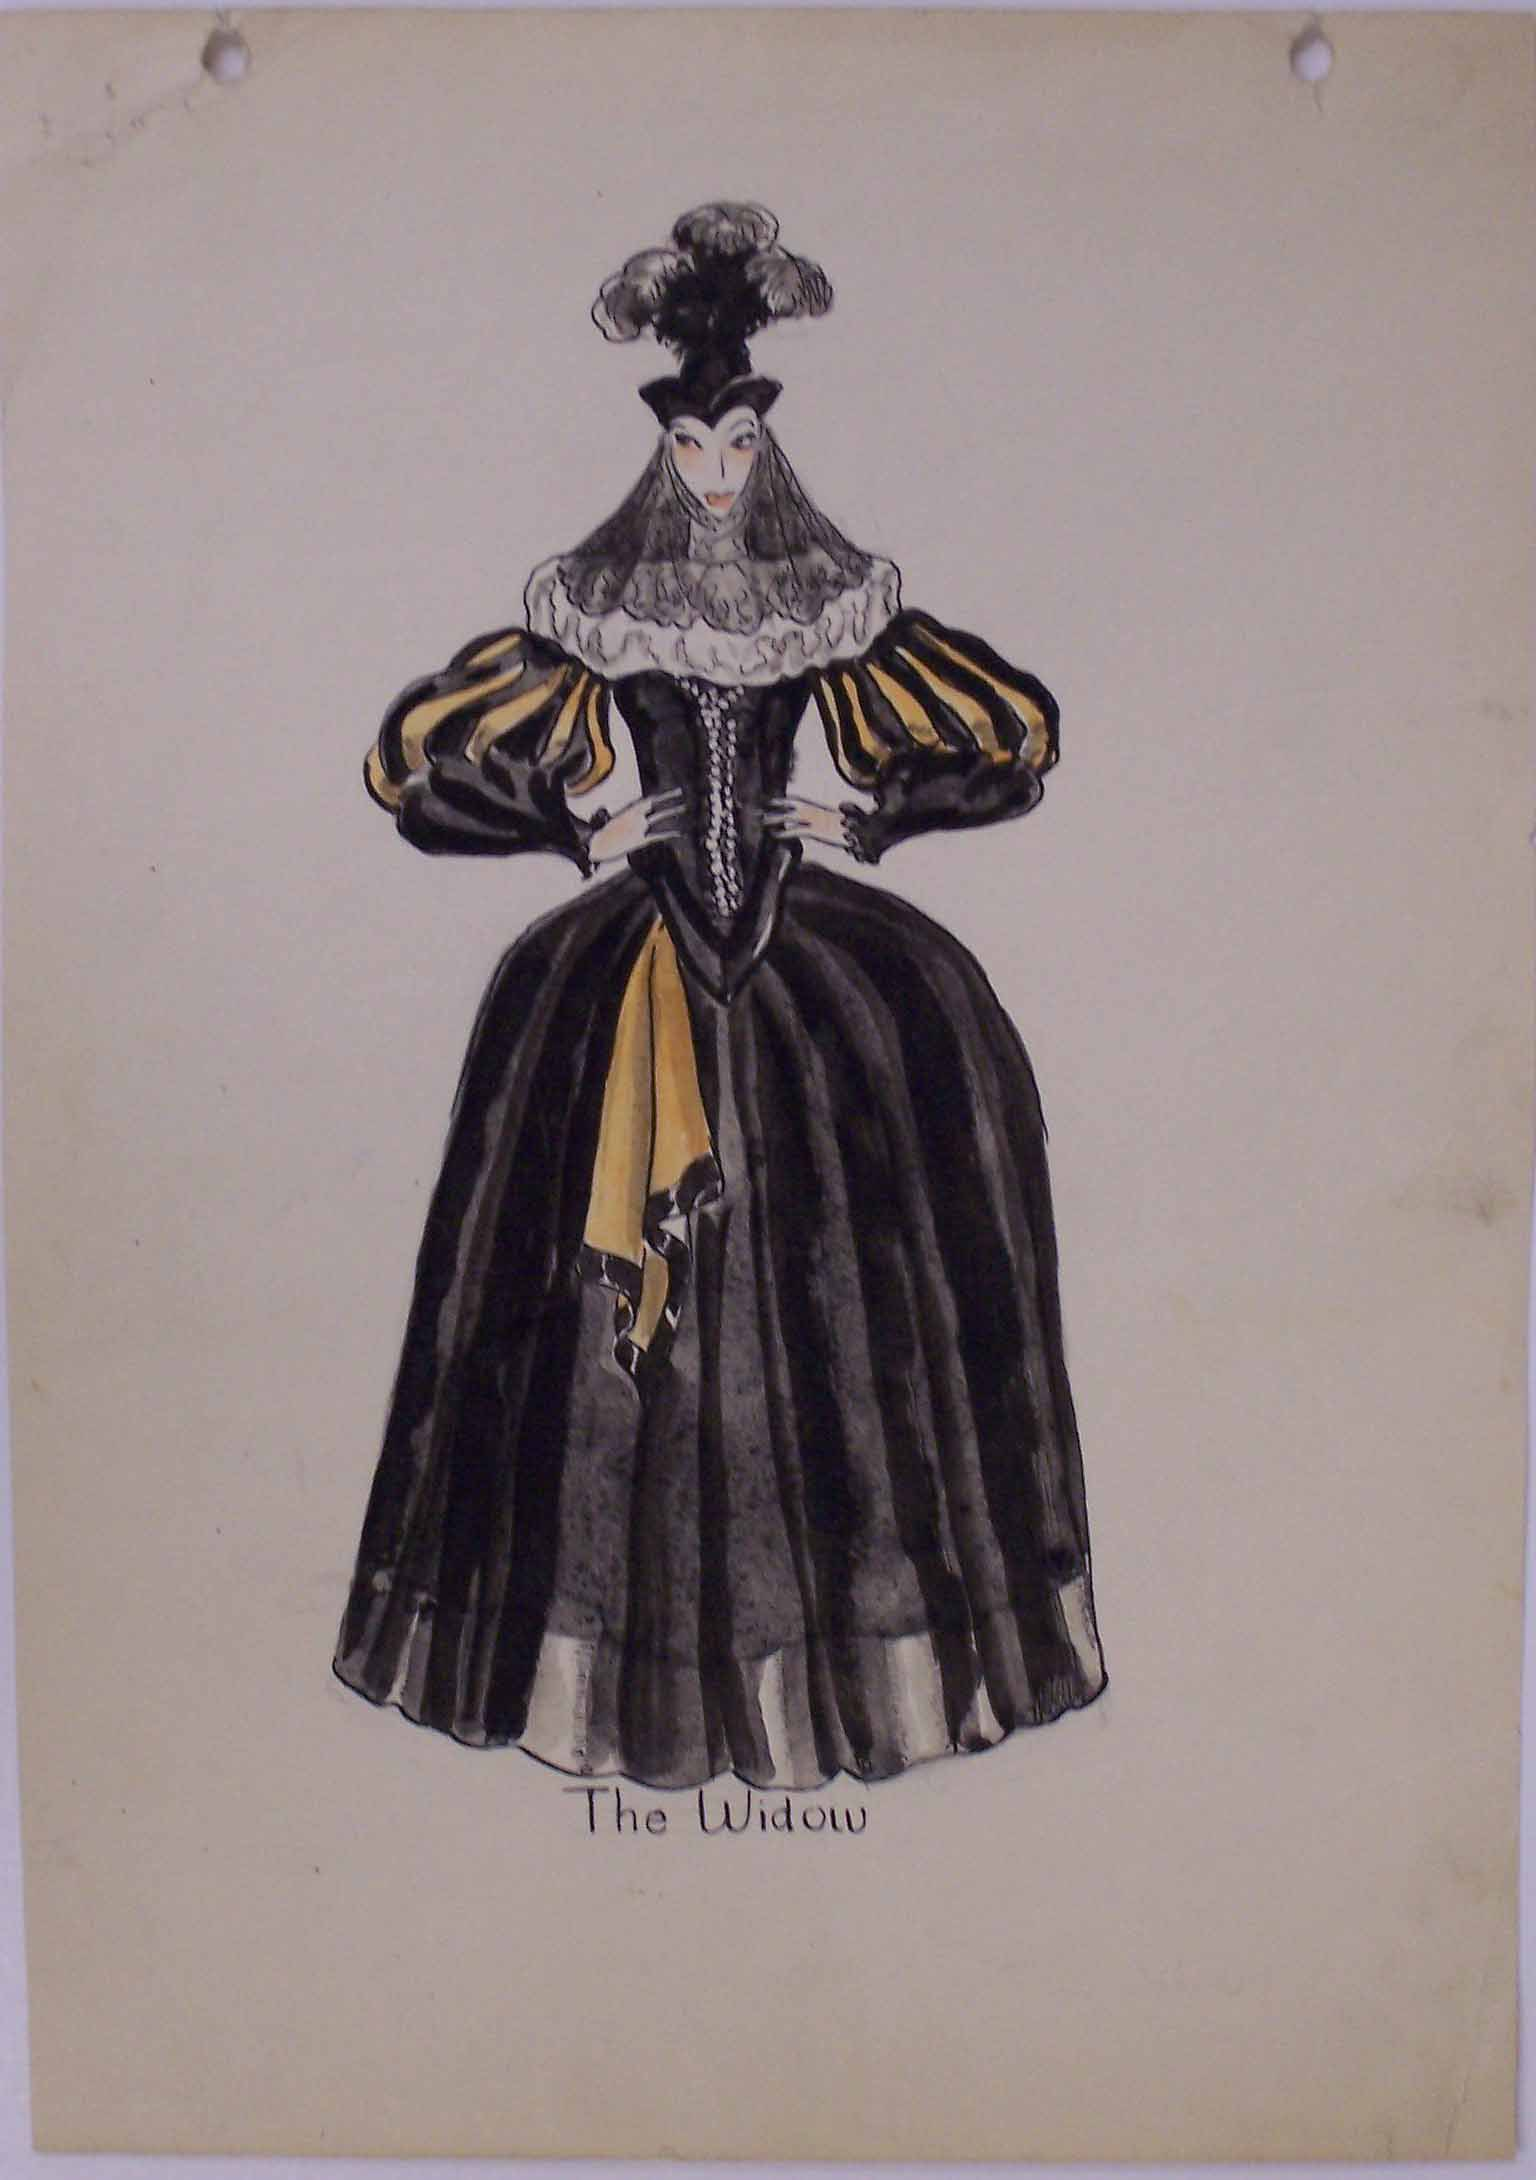 Whittaker costume design for The Taming of the Shrew